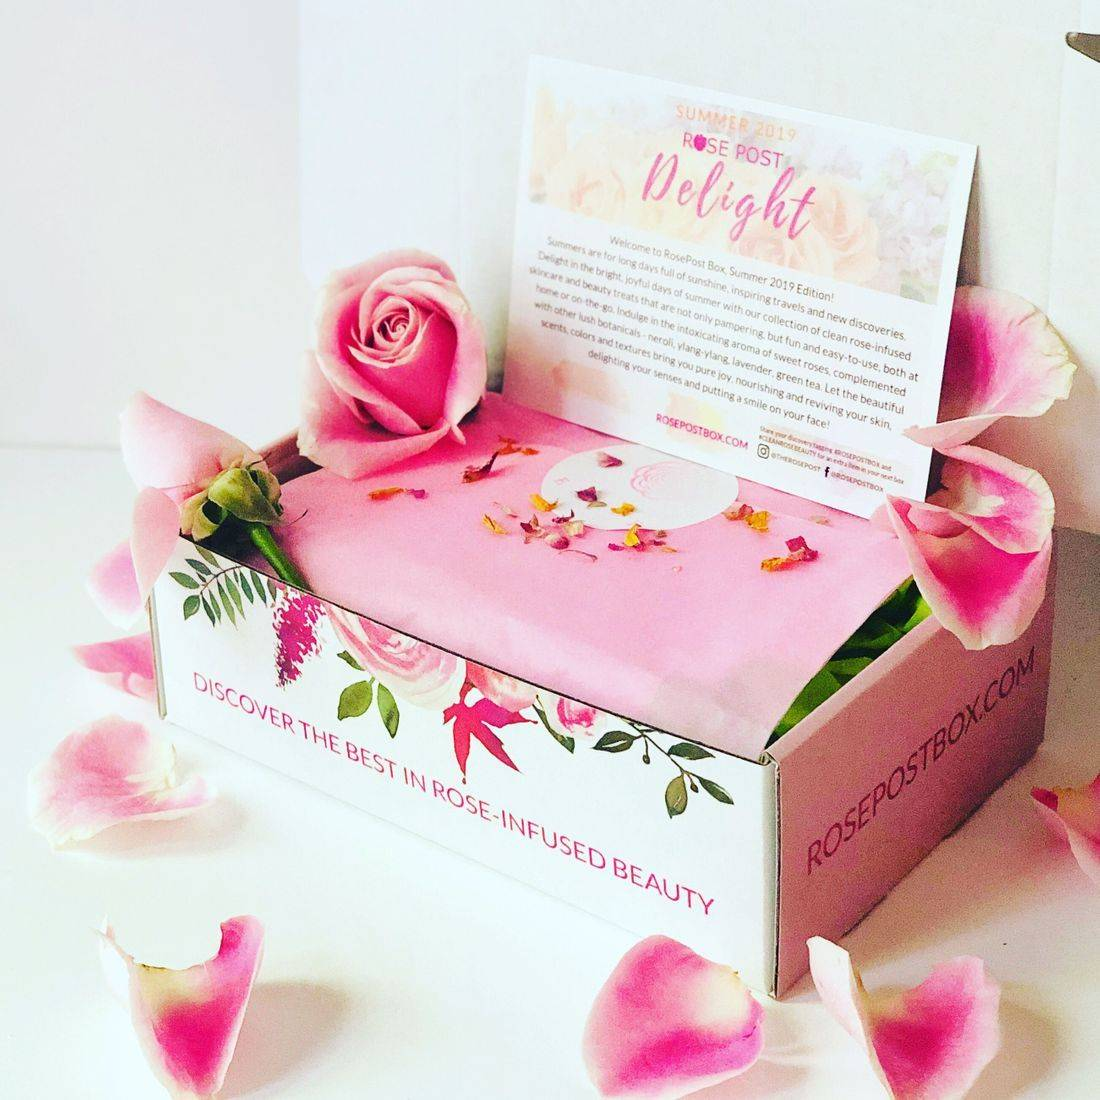 summer skincare routine, best rose-infused skincare valentine's day, crystal-infused skincare, rose beauty, best rose beauty, organic rose-infused pampering treats, rose beauty box